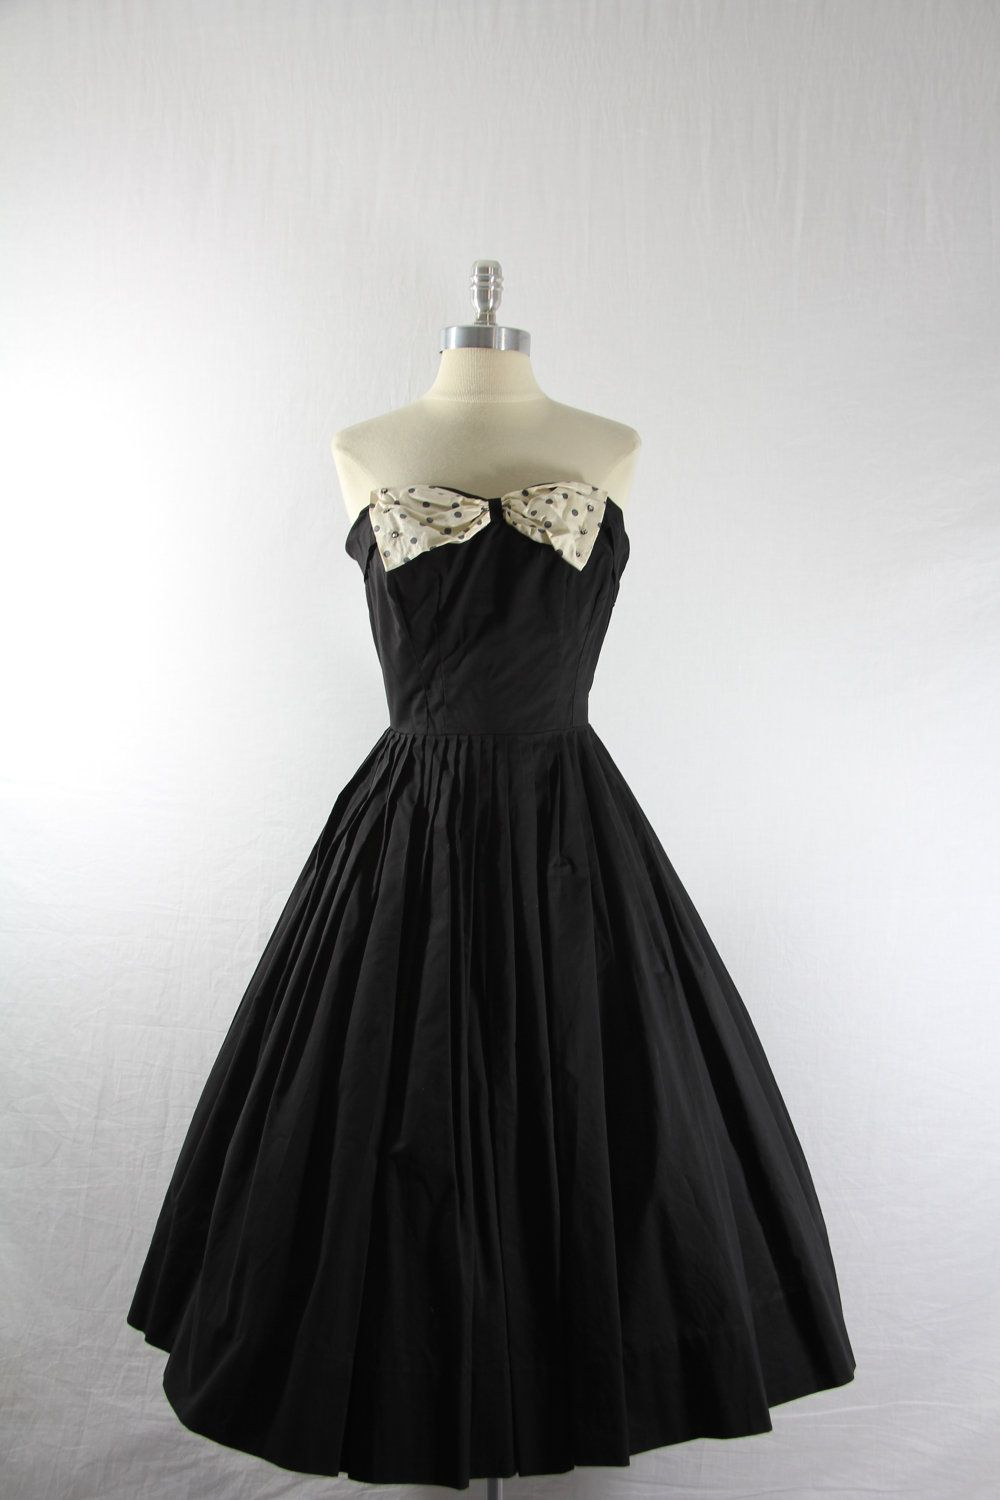 S strapless dress black cotton with large bust polka dot bow